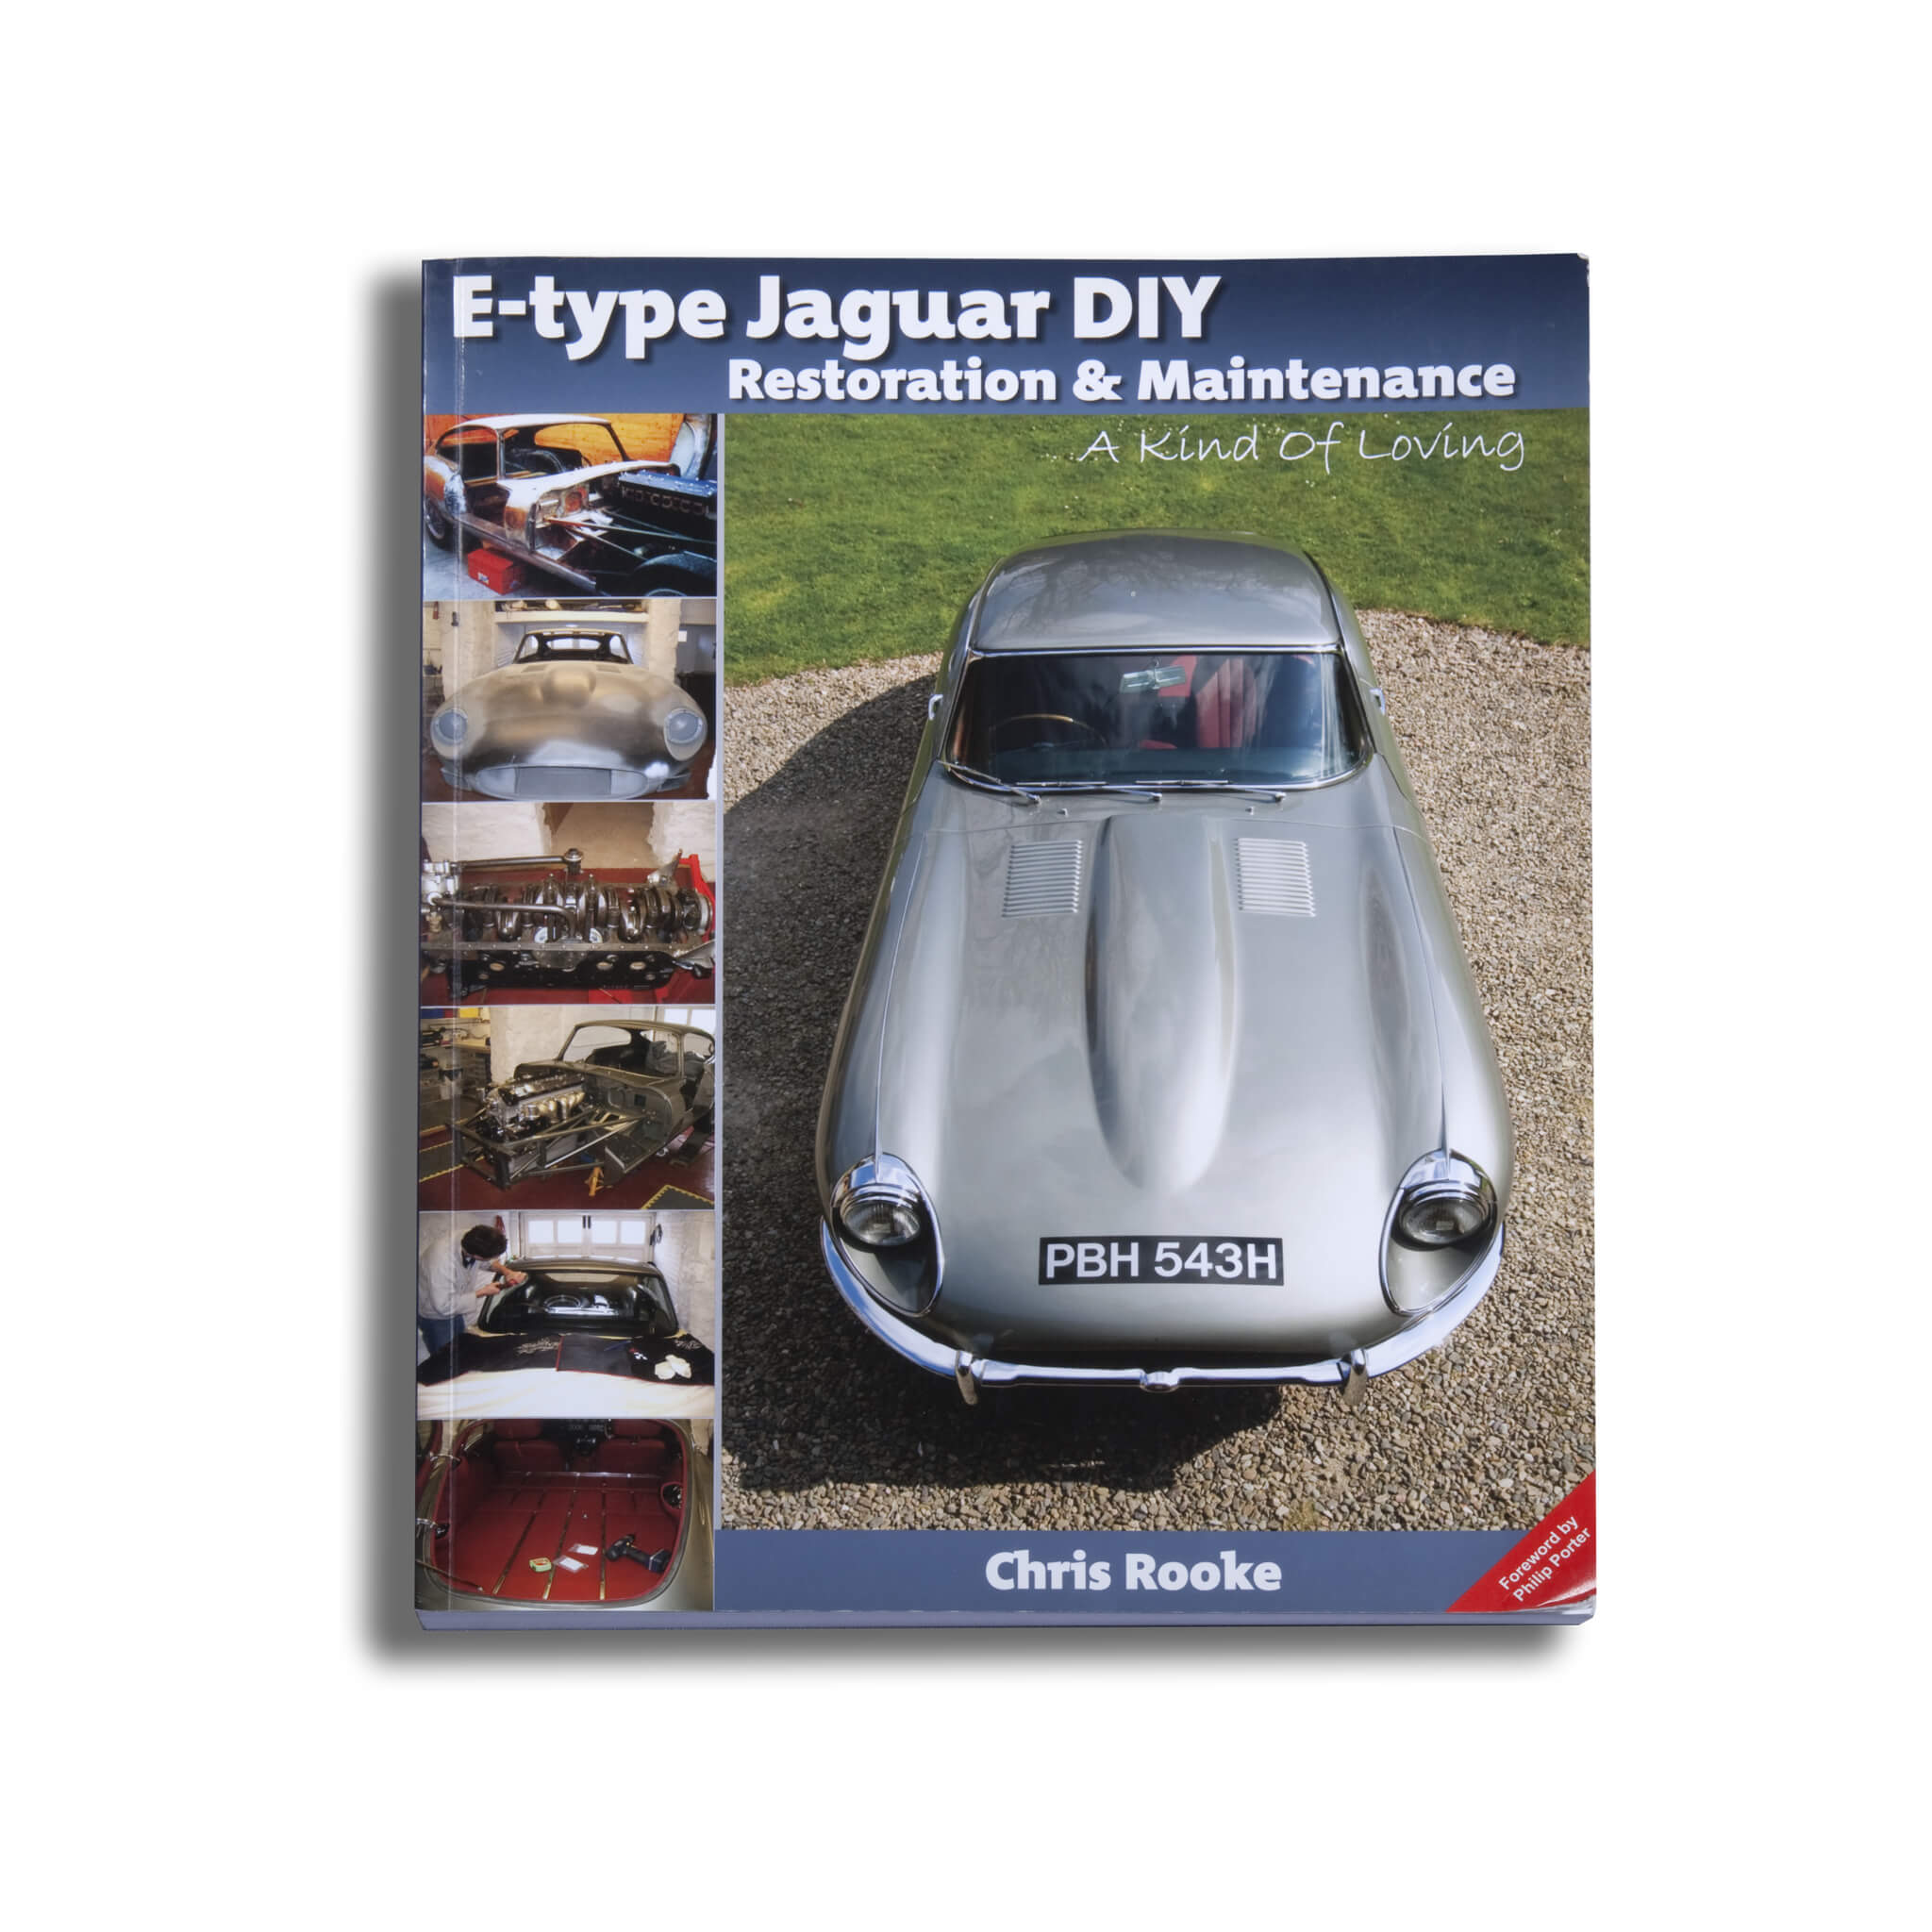 E-Type Jaguar Diy Restoration & Maintenance: A Kind Of Loving Book